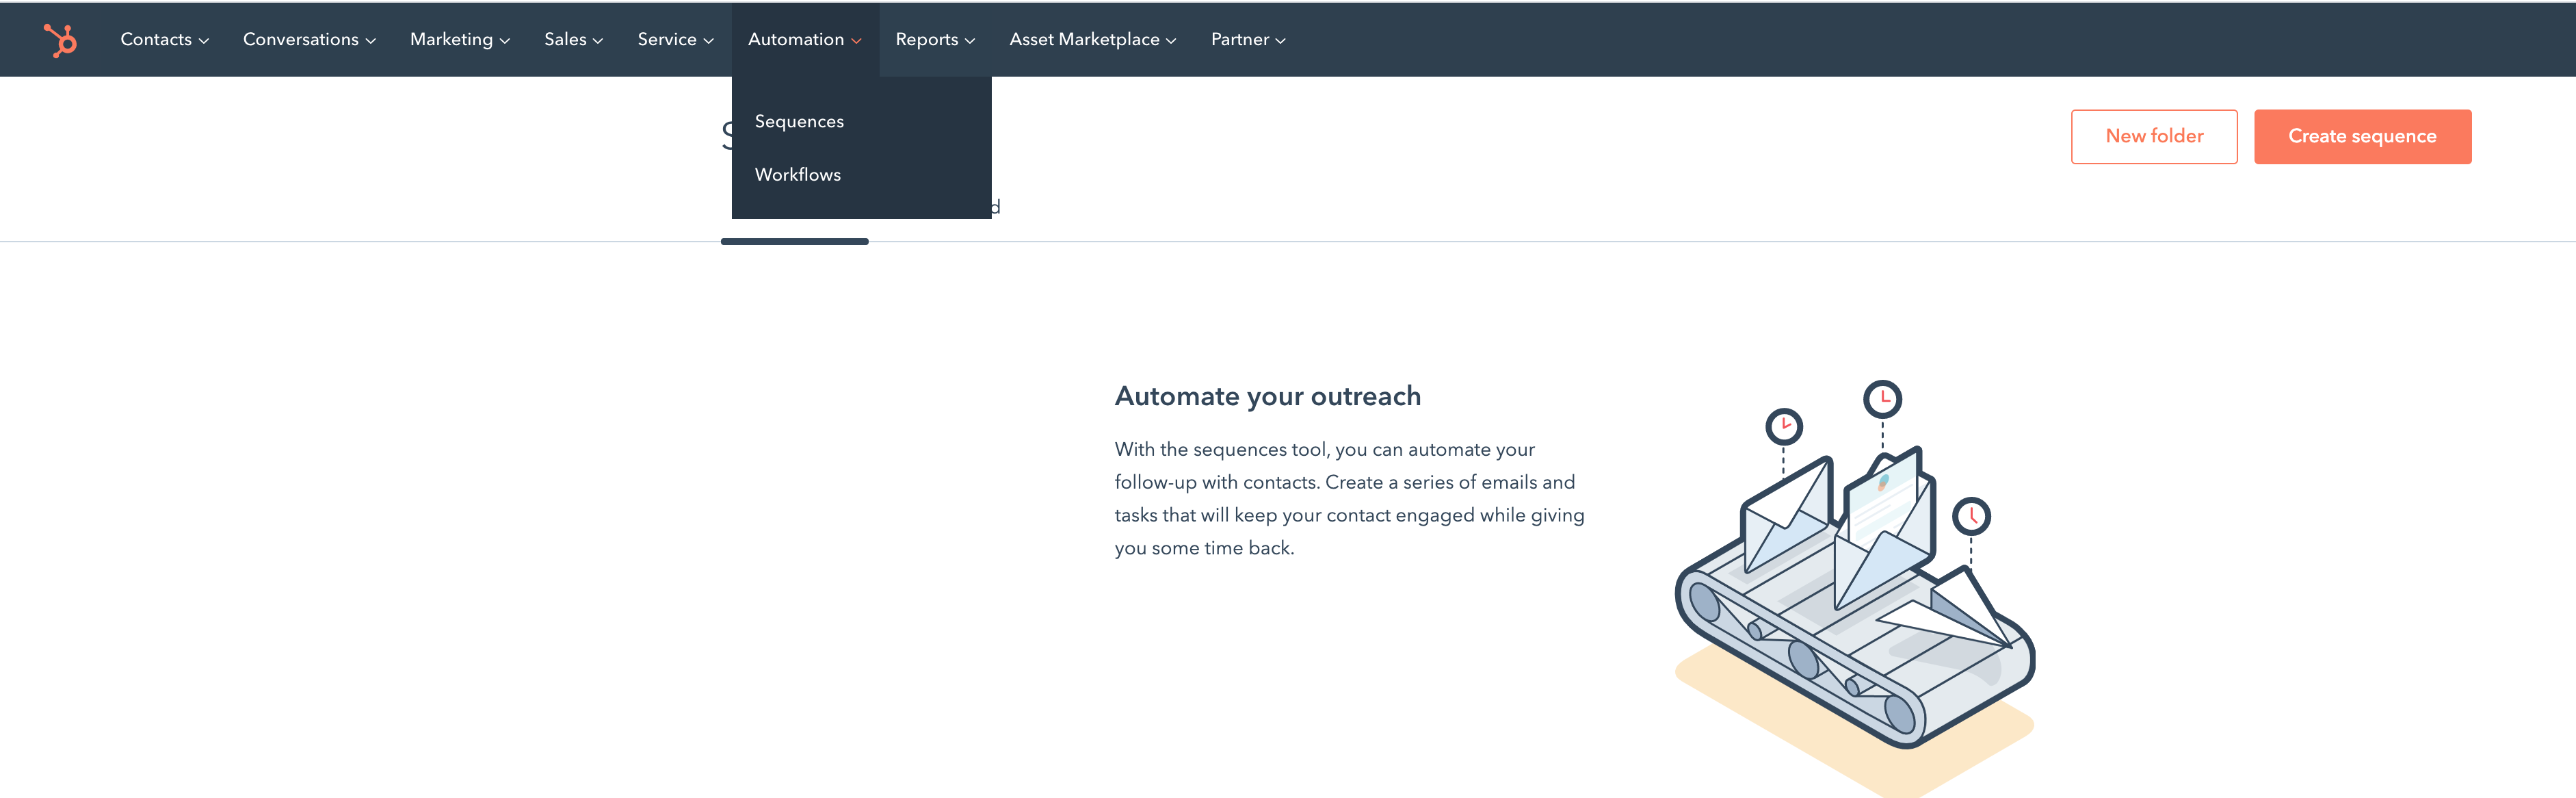 hubspot productivity hack_sequences_find_analytics that prifit